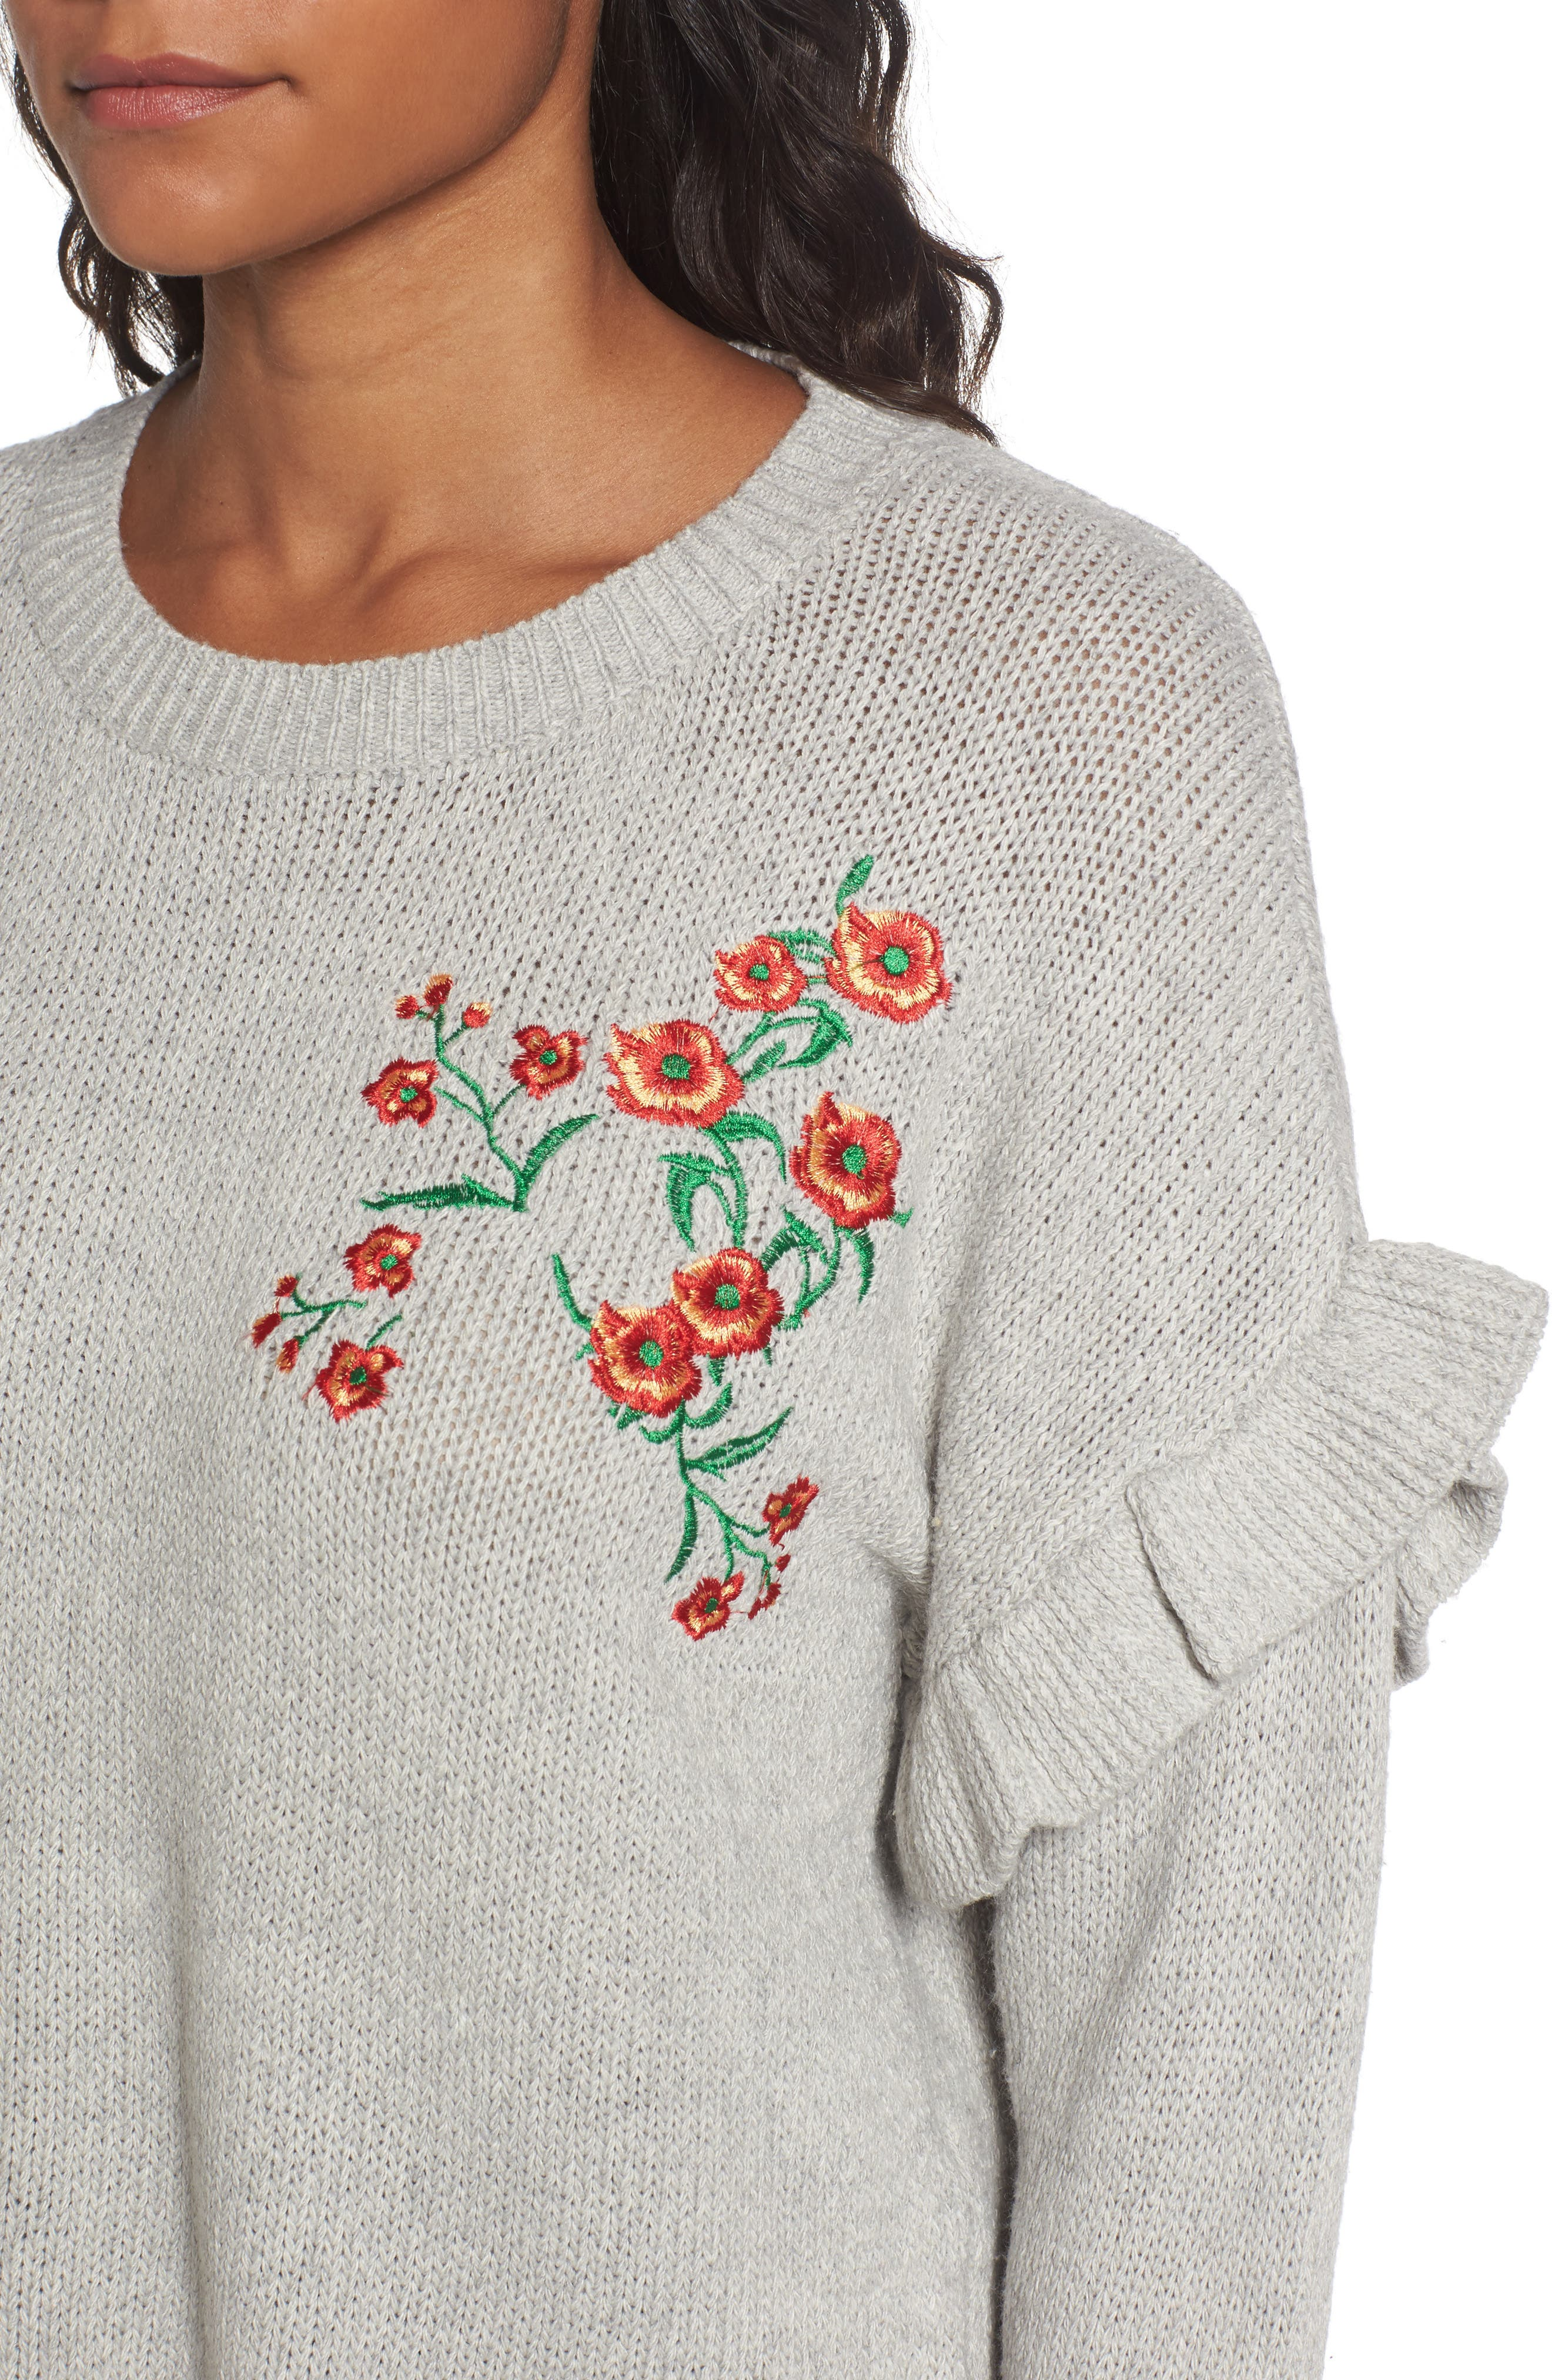 Ruffle Sleeve Embroidered Sweater,                             Alternate thumbnail 4, color,                             Grey